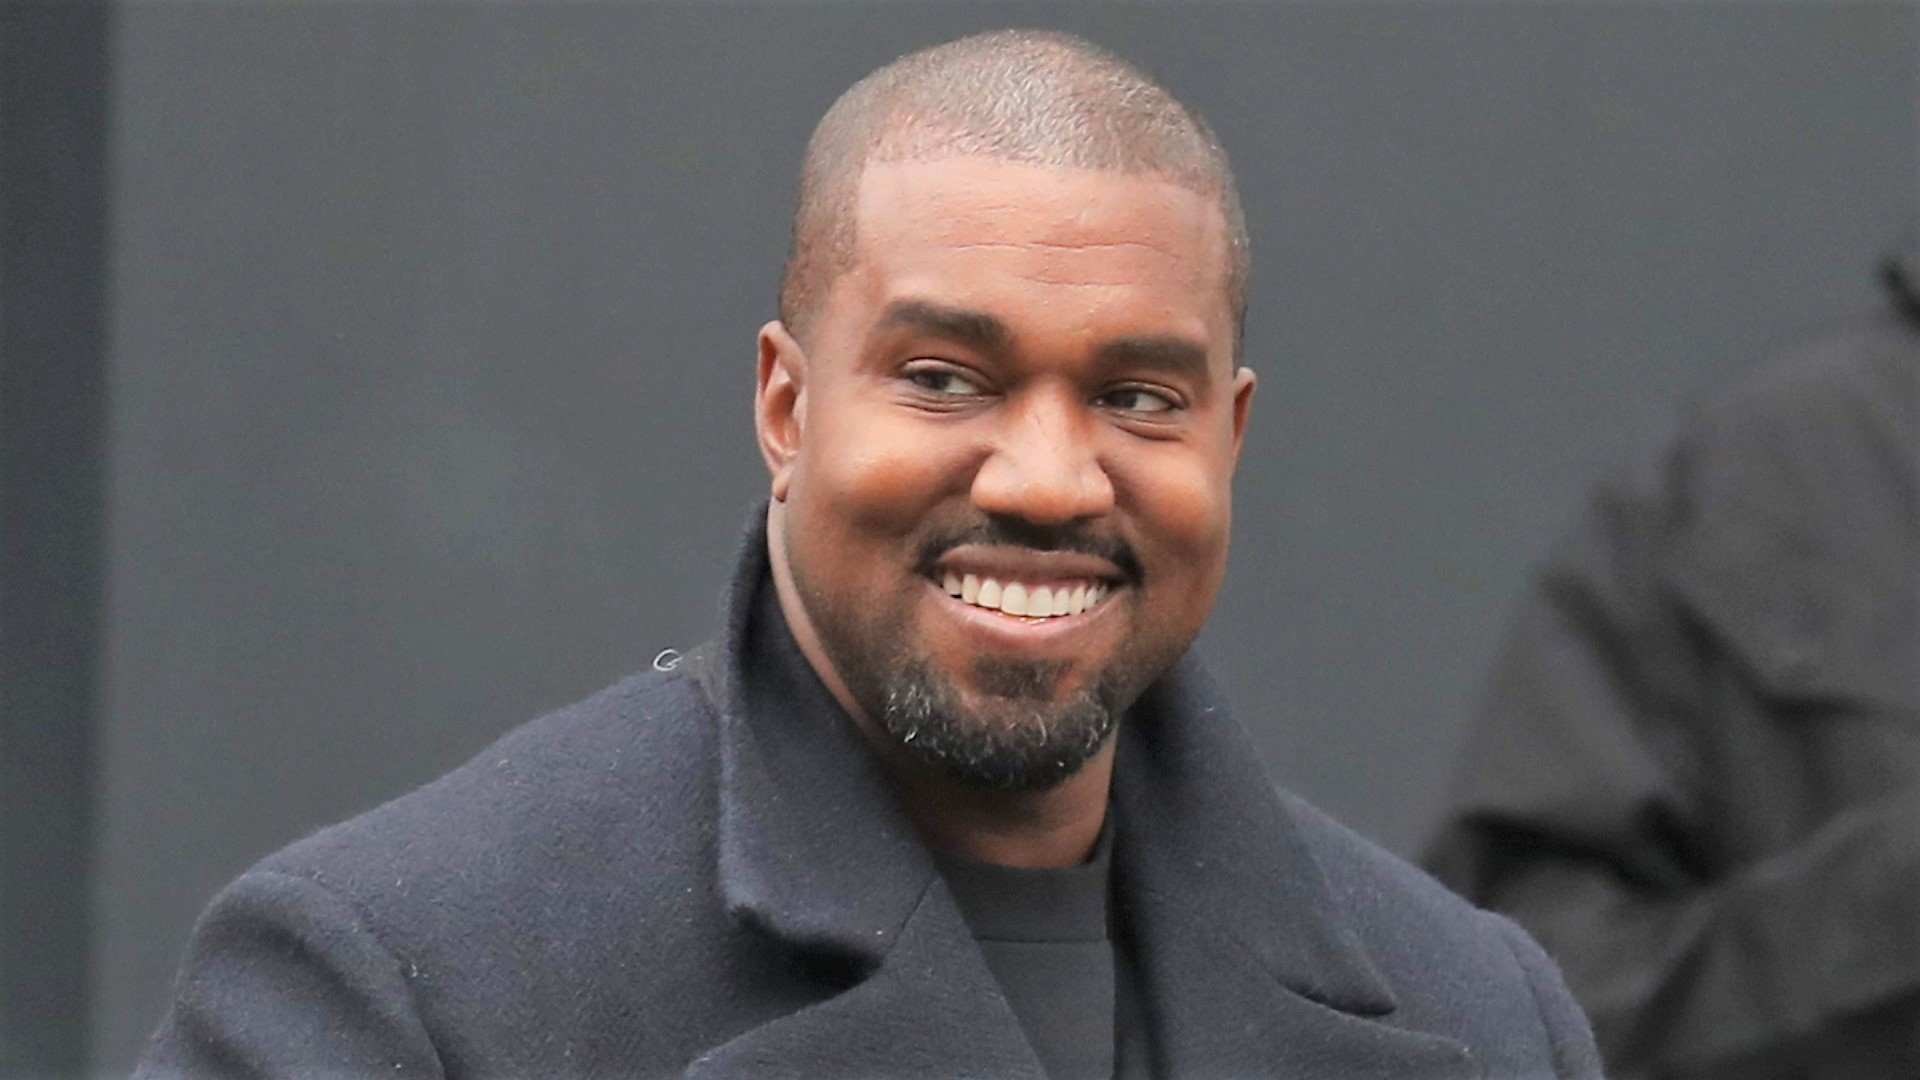 Kanye West at 44: a tormented artist and (almost) the richest Black man in U.S. history